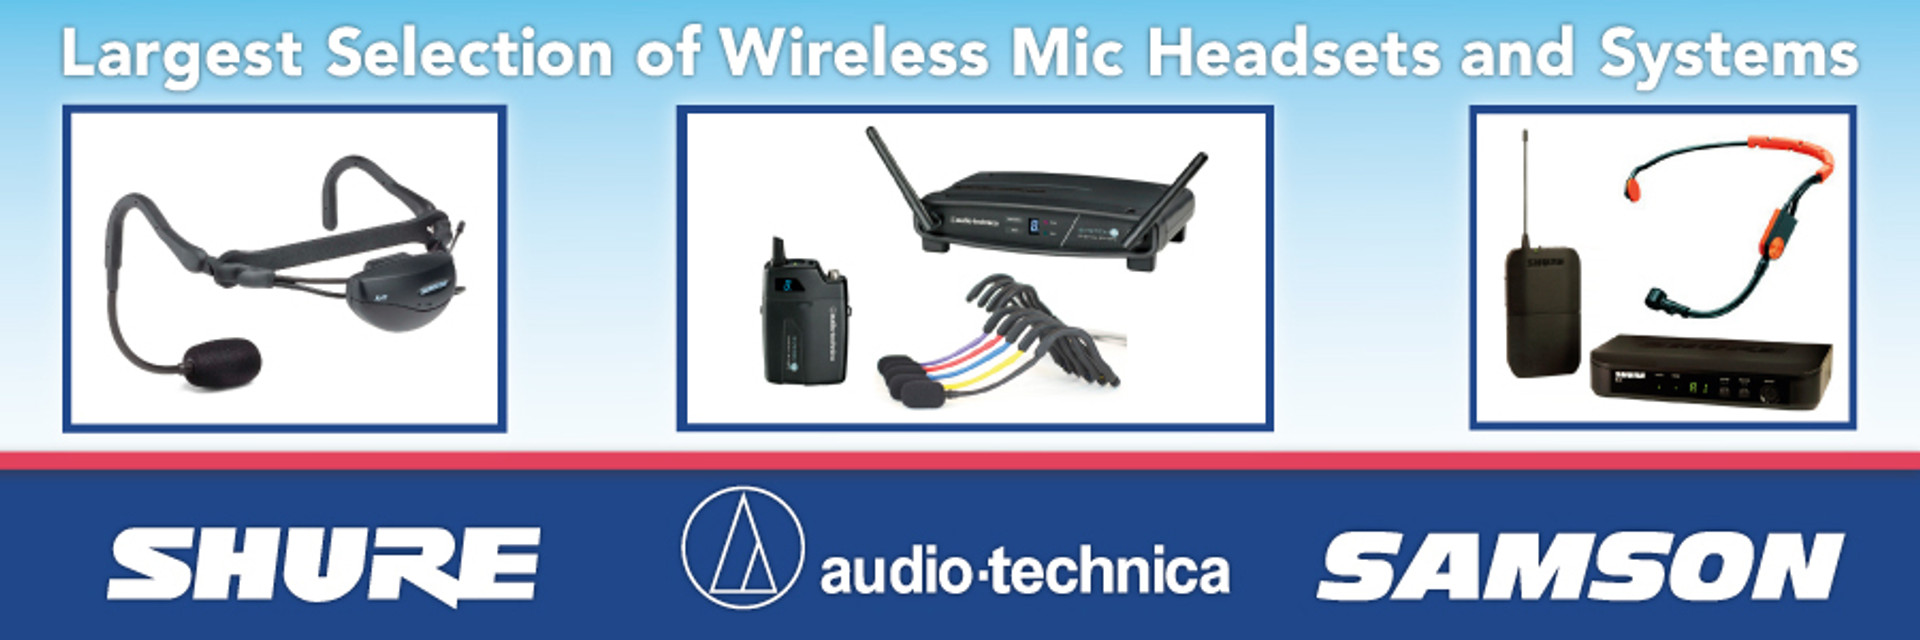 Largest selection of fitness wireless microphone systems!